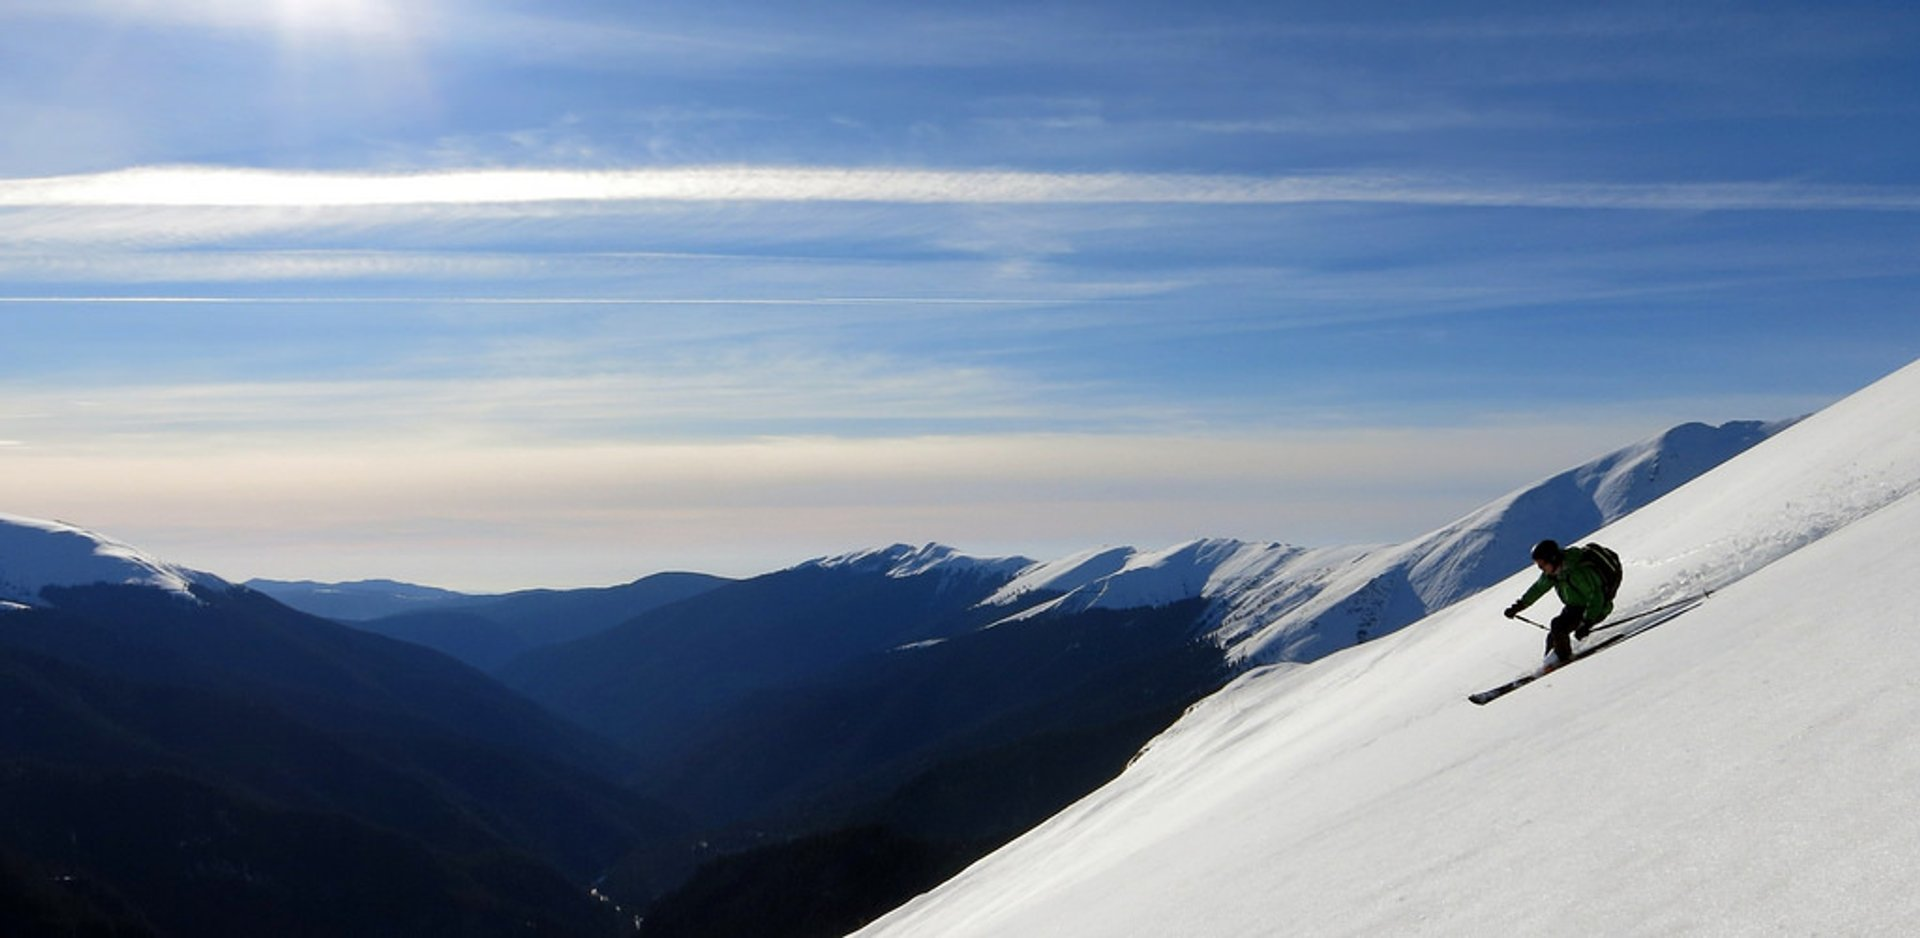 Fagarash Mountains (Romania) early season skiing 2020